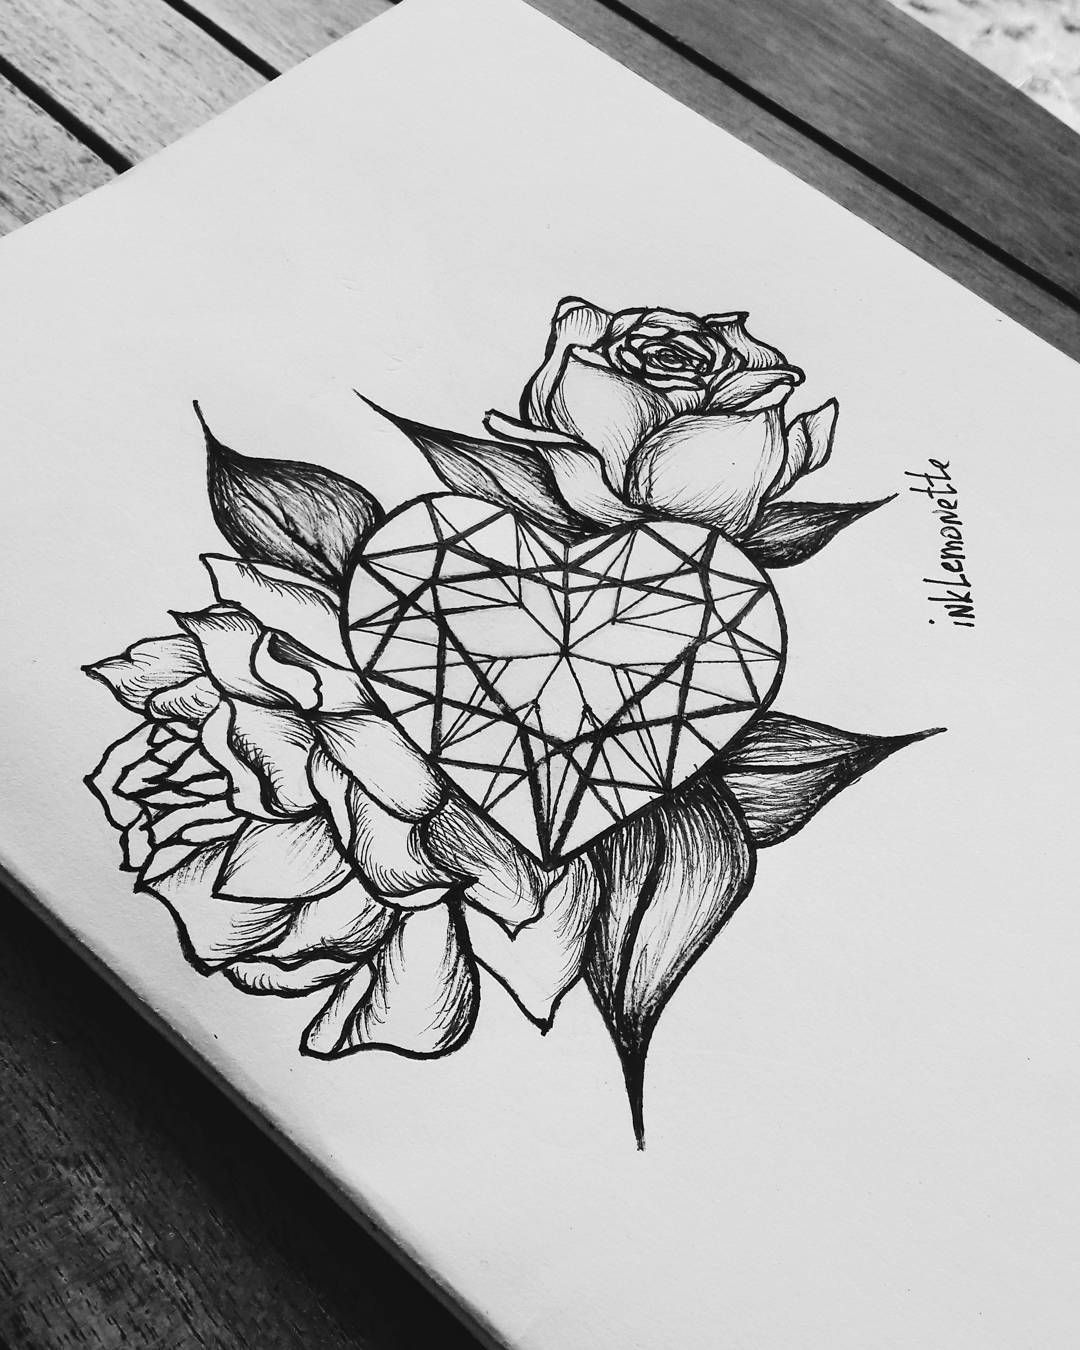 70dac3fd17eb1 #roses #heart #diamond #design #tattoo #idea #inklemonette #ink  #instatattoo #instaink #blackandwhite #nature #jewels #gemstone